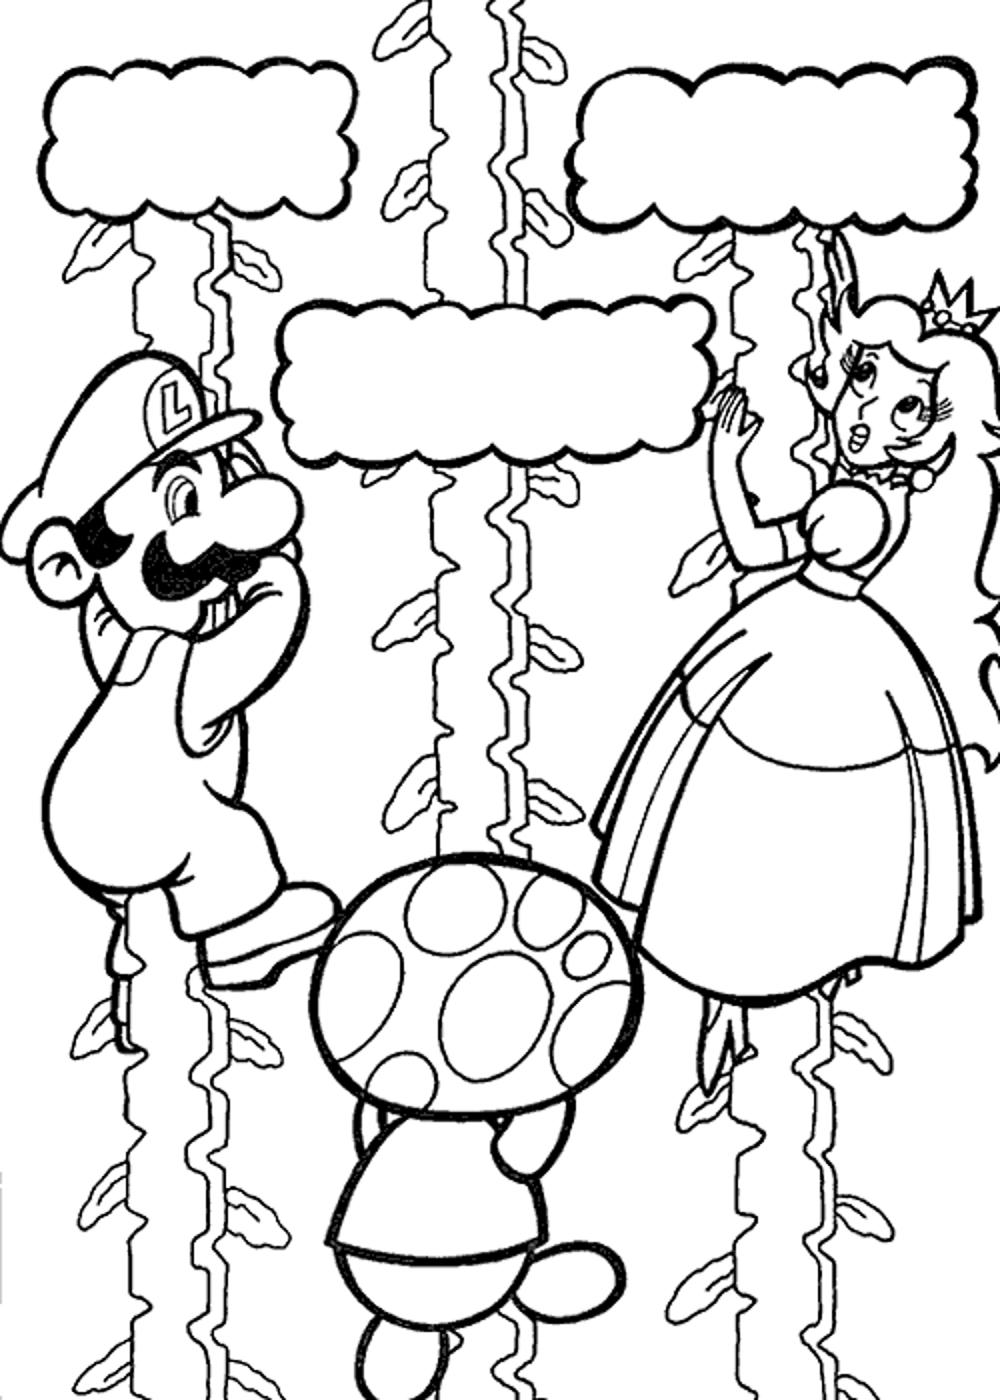 mario coloring mario coloring pages themes best apps for kids mario coloring 1 1